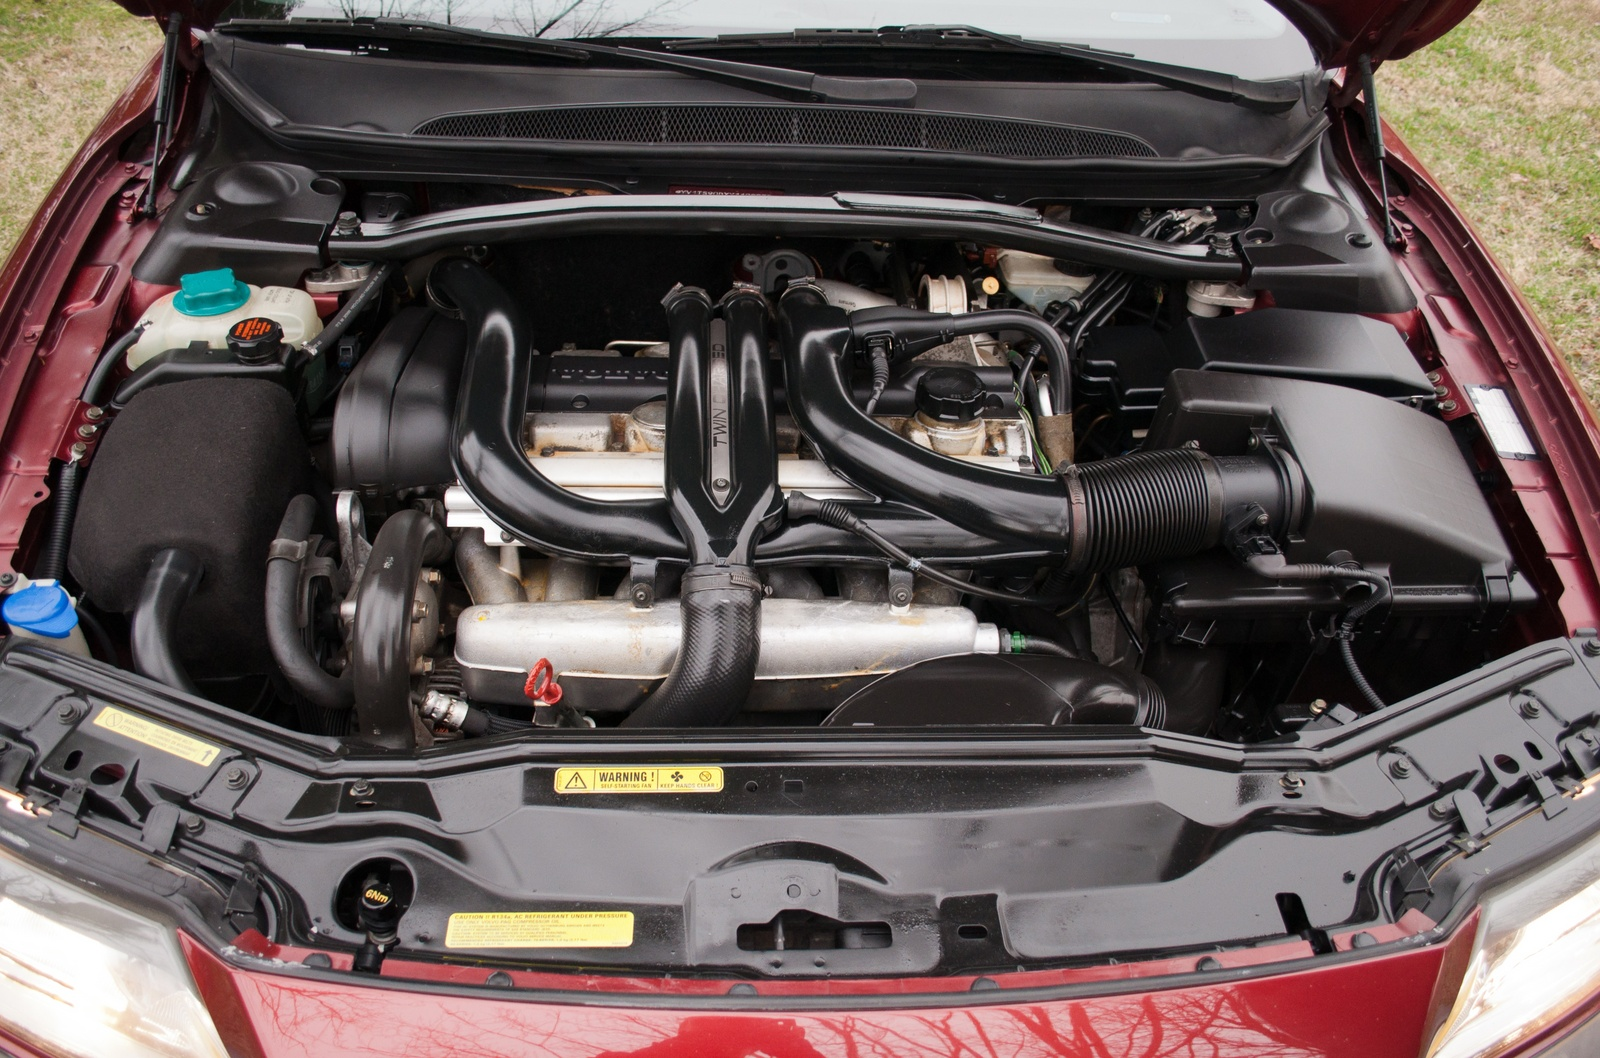 similiar volvo t6 engine specifications keywords picture of 2000 volvo s80 t6 engine